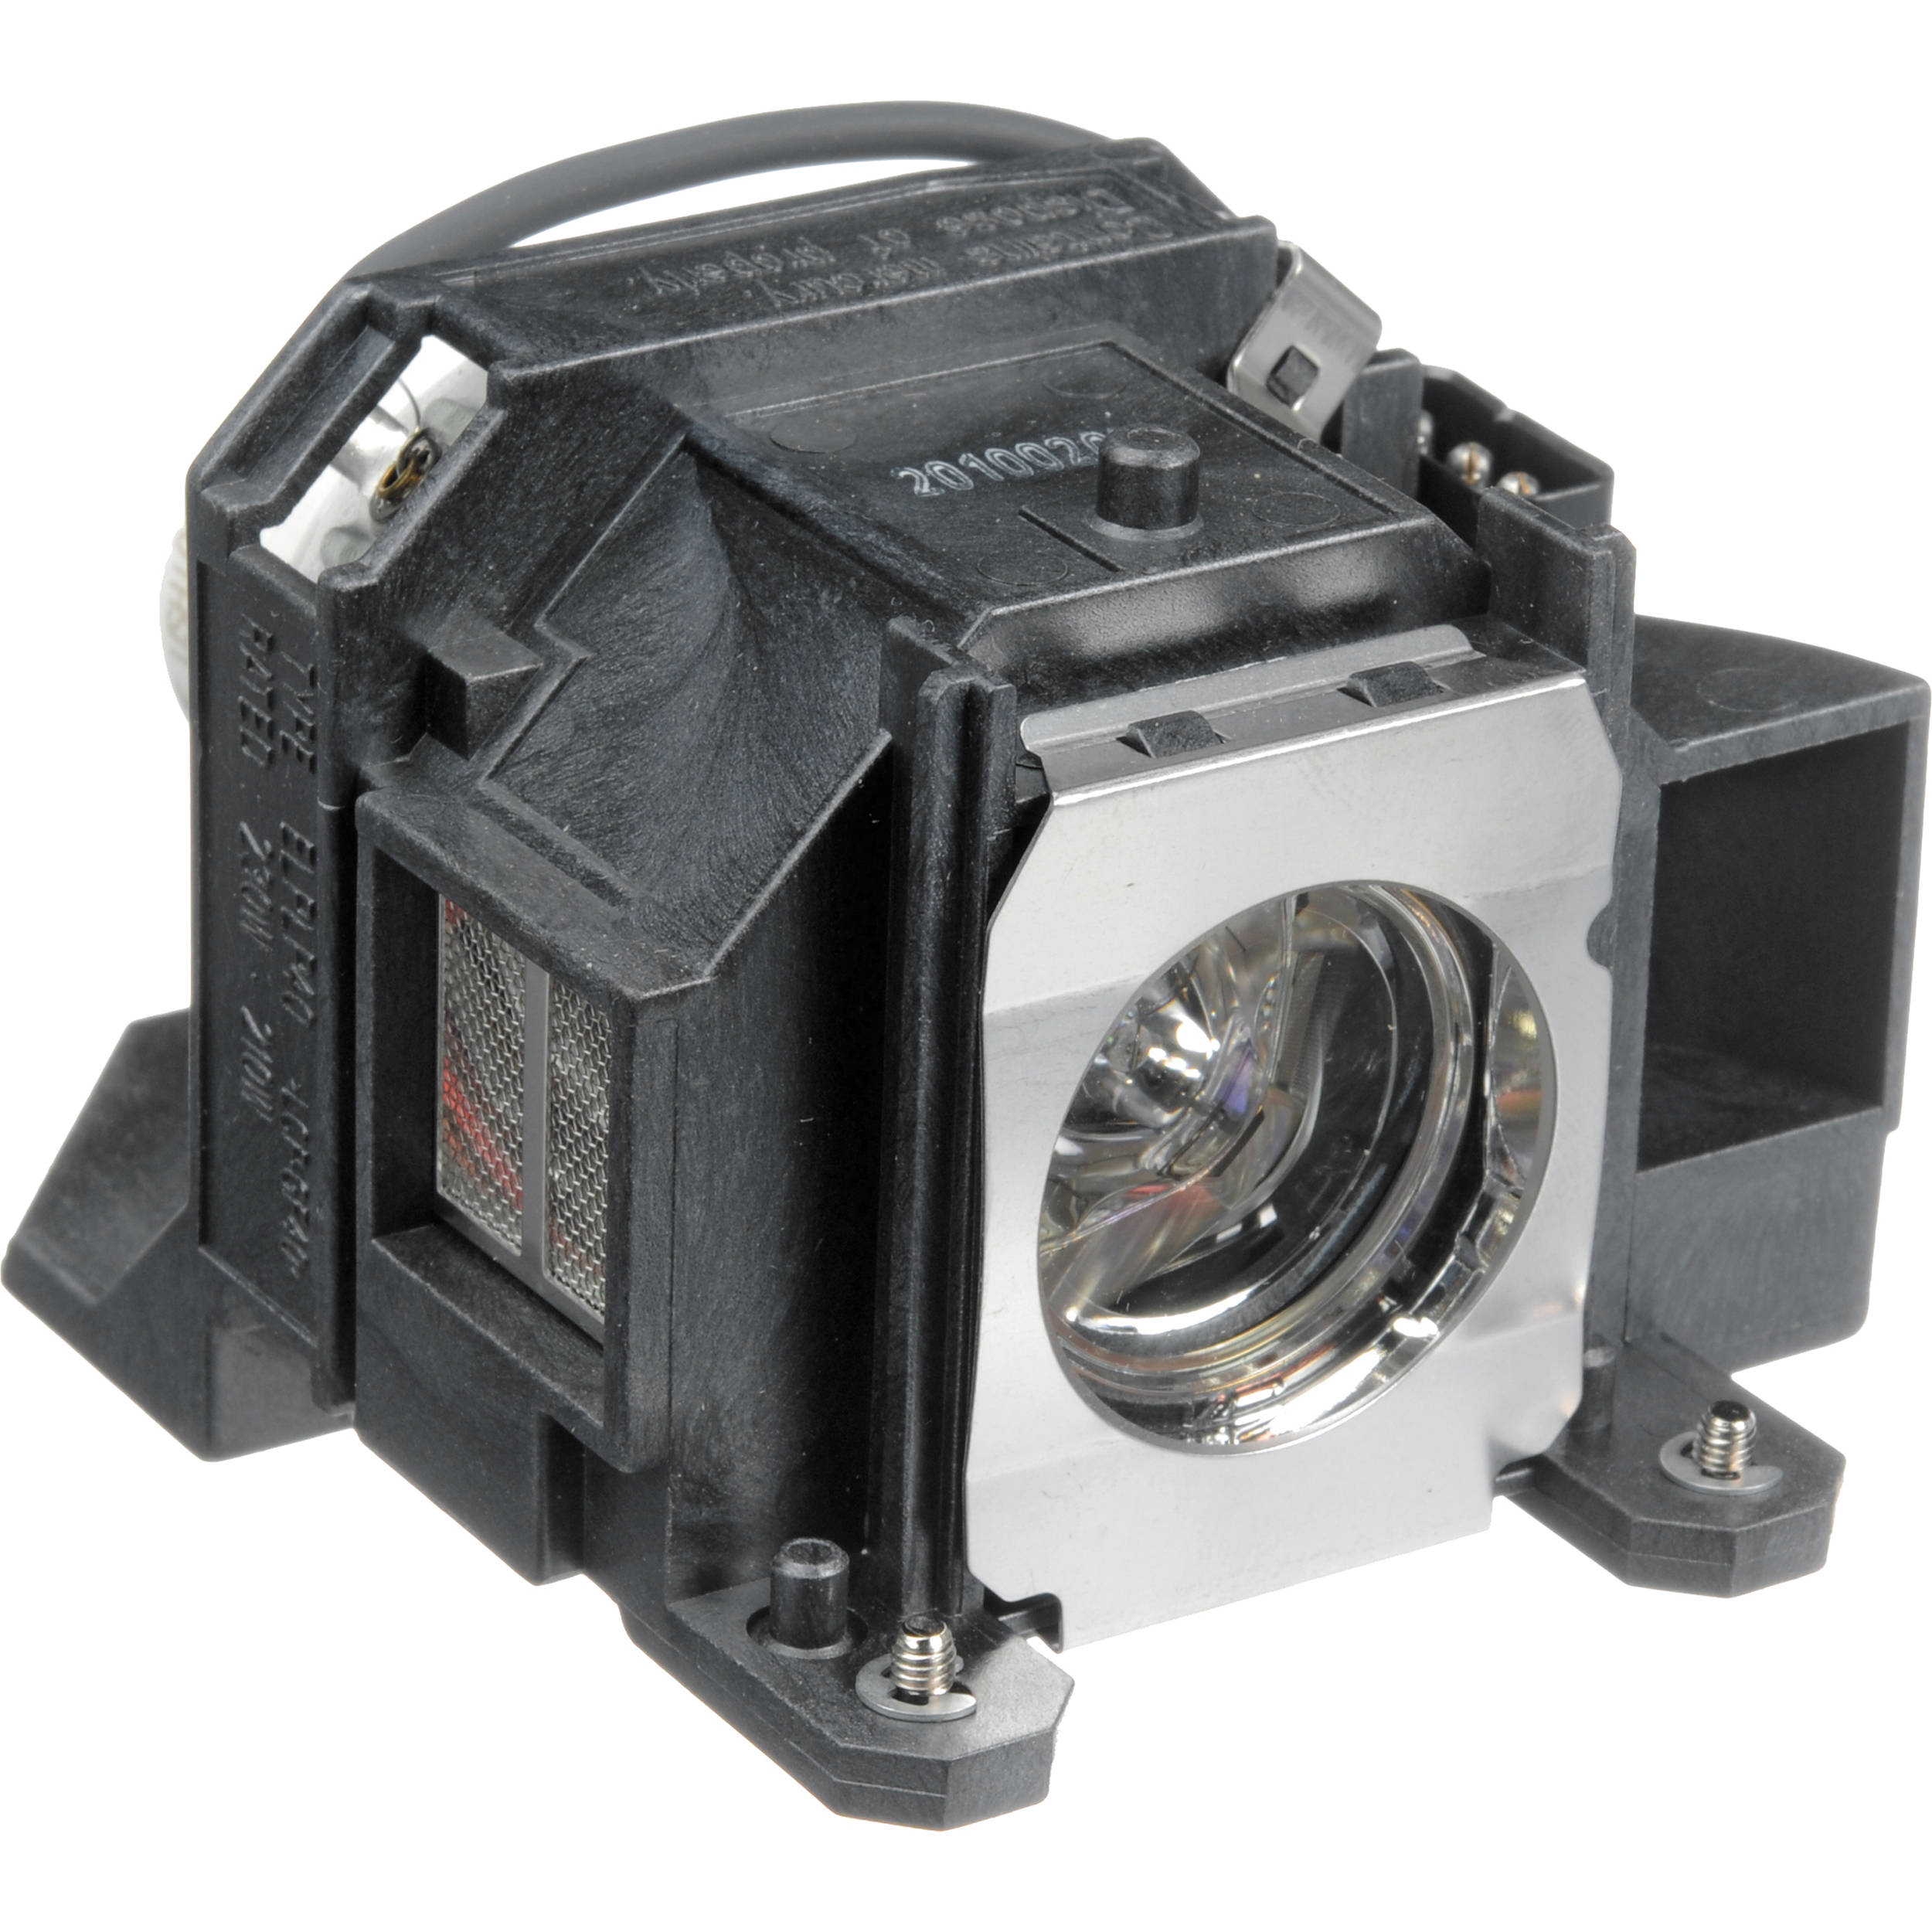 Epson V13H010L40 Projector Replacement Lamp V13H010L40 B&H Photo